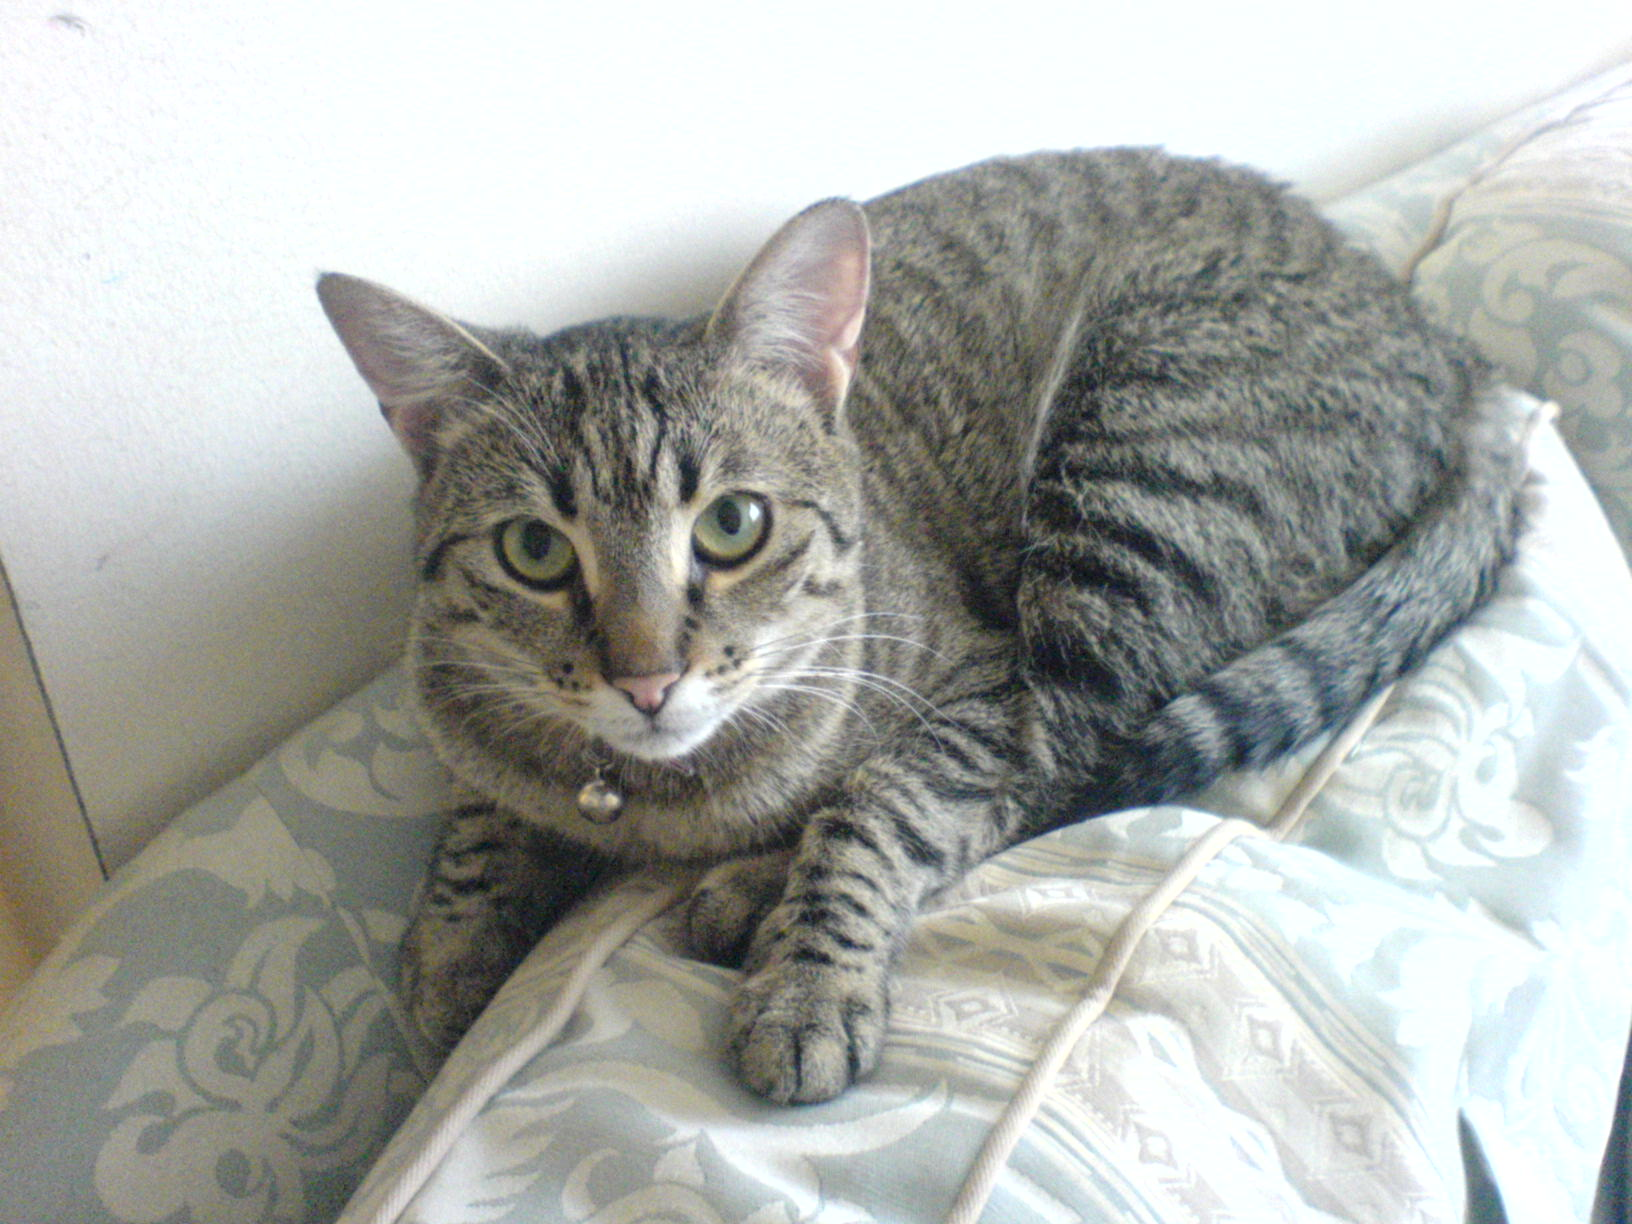 A tabby cat, found as kitten, looks at us from the back of a couch